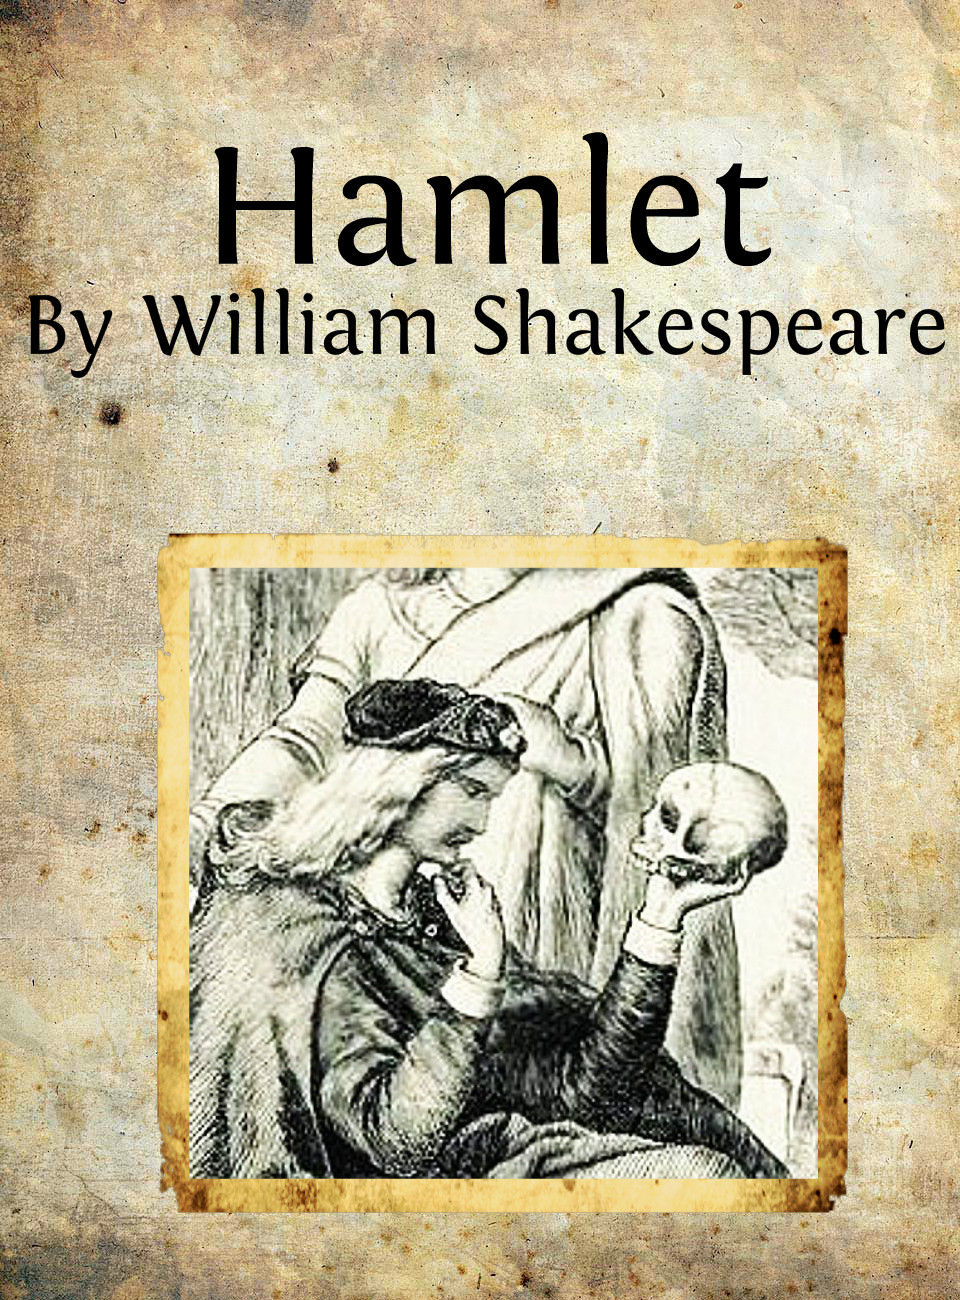 a summary of william shakespeares hamlet The tragedy of hamlet, prince of denmark is a tragedy by william shakespeare set in the kingdom of denmark, the play dramatizes the revenge prince hamlet exacts on his uncle claudius for murdering king hamlet, claudius's brother and prince hamlet's father, and then succeeding to the throne and taking as his wife gertrude, the old king's widow and prince hamlet.